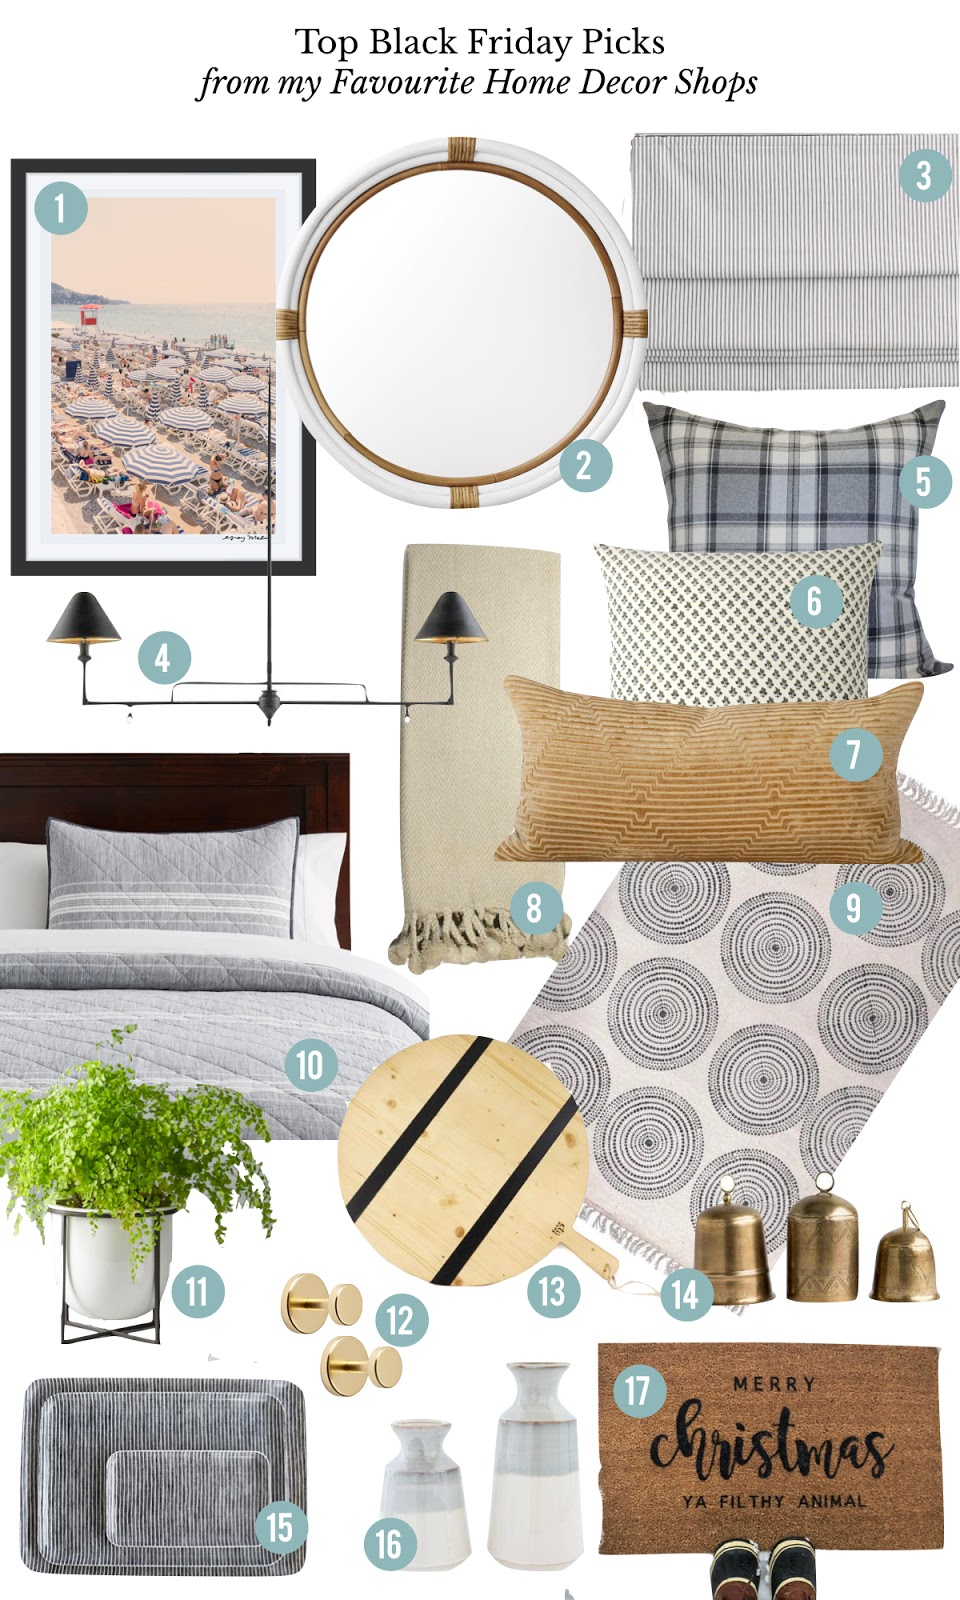 top home decor picks for Black Friday